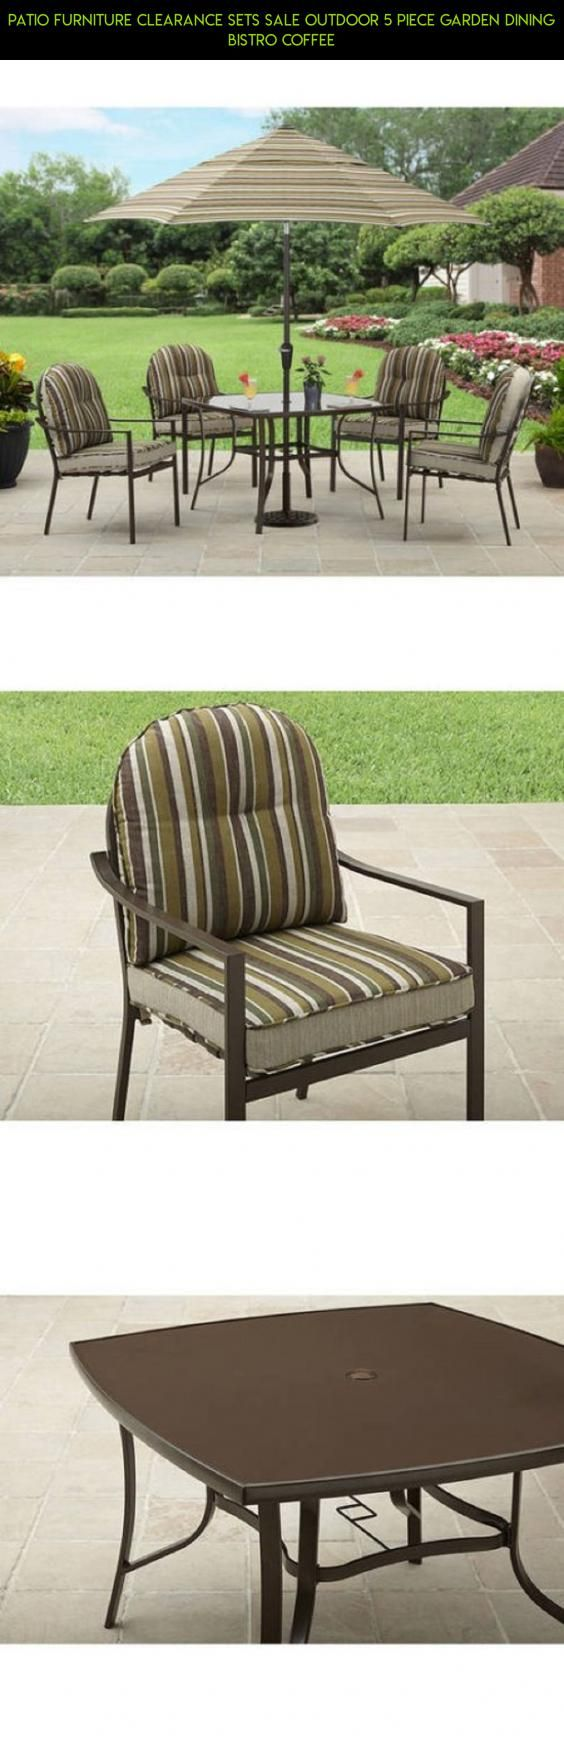 Exceptional Patio Furniture Clearance Sets Sale Outdoor 5 Piece Garden Dining Bistro  Coffee #clearance #furniture